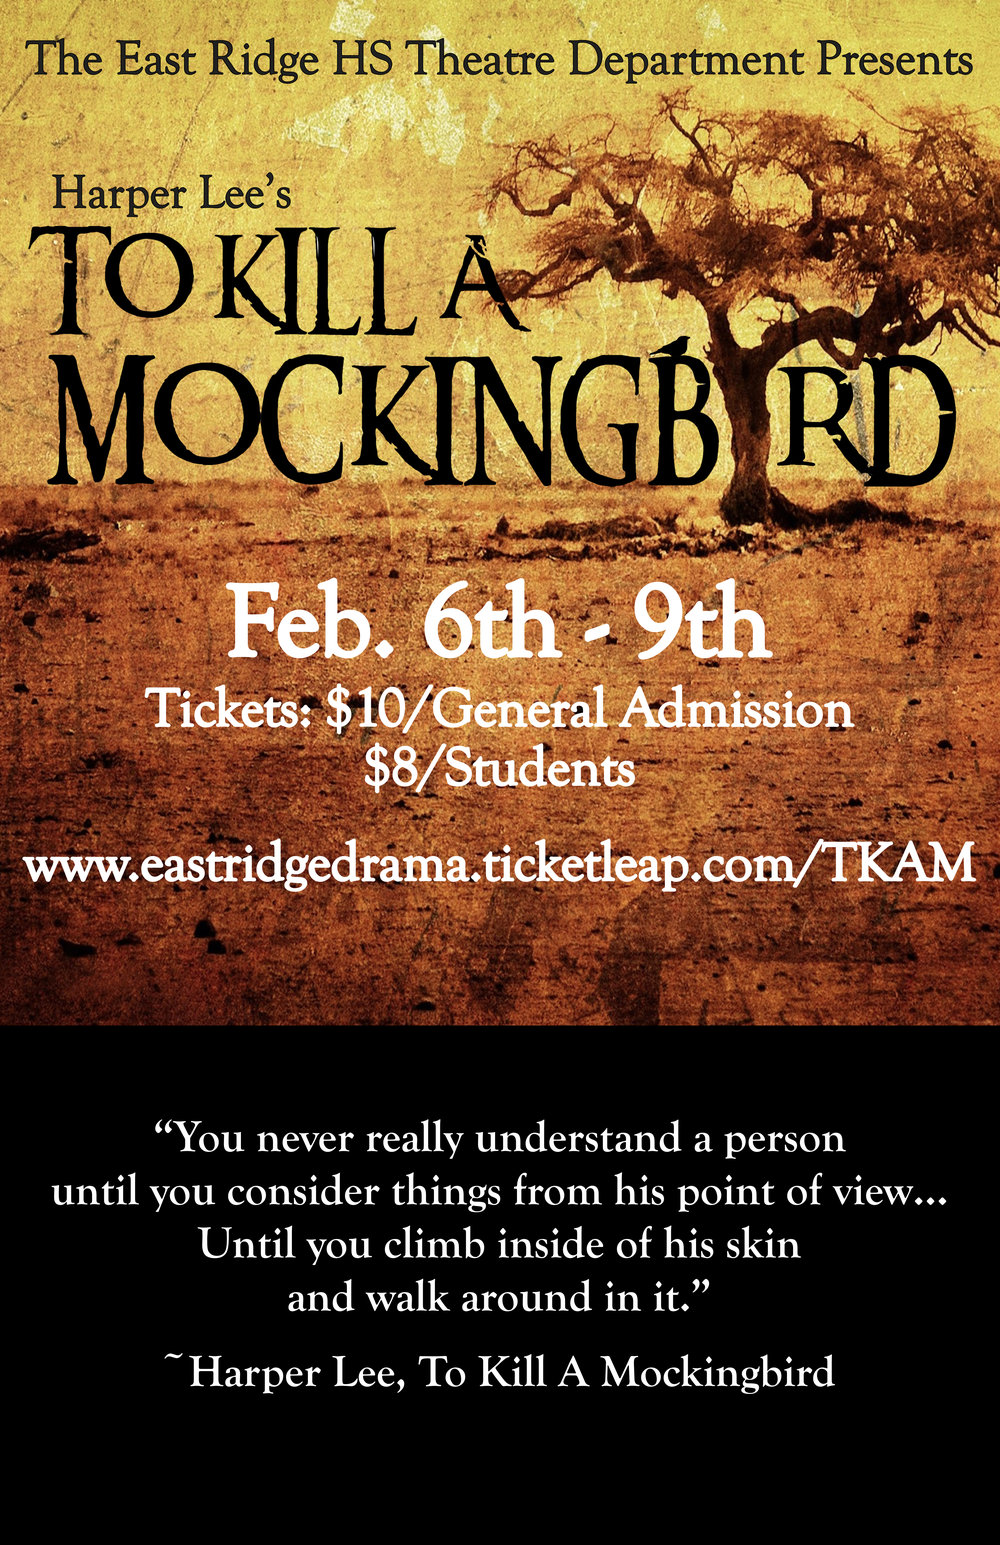 Mockingbird poster small.jpg